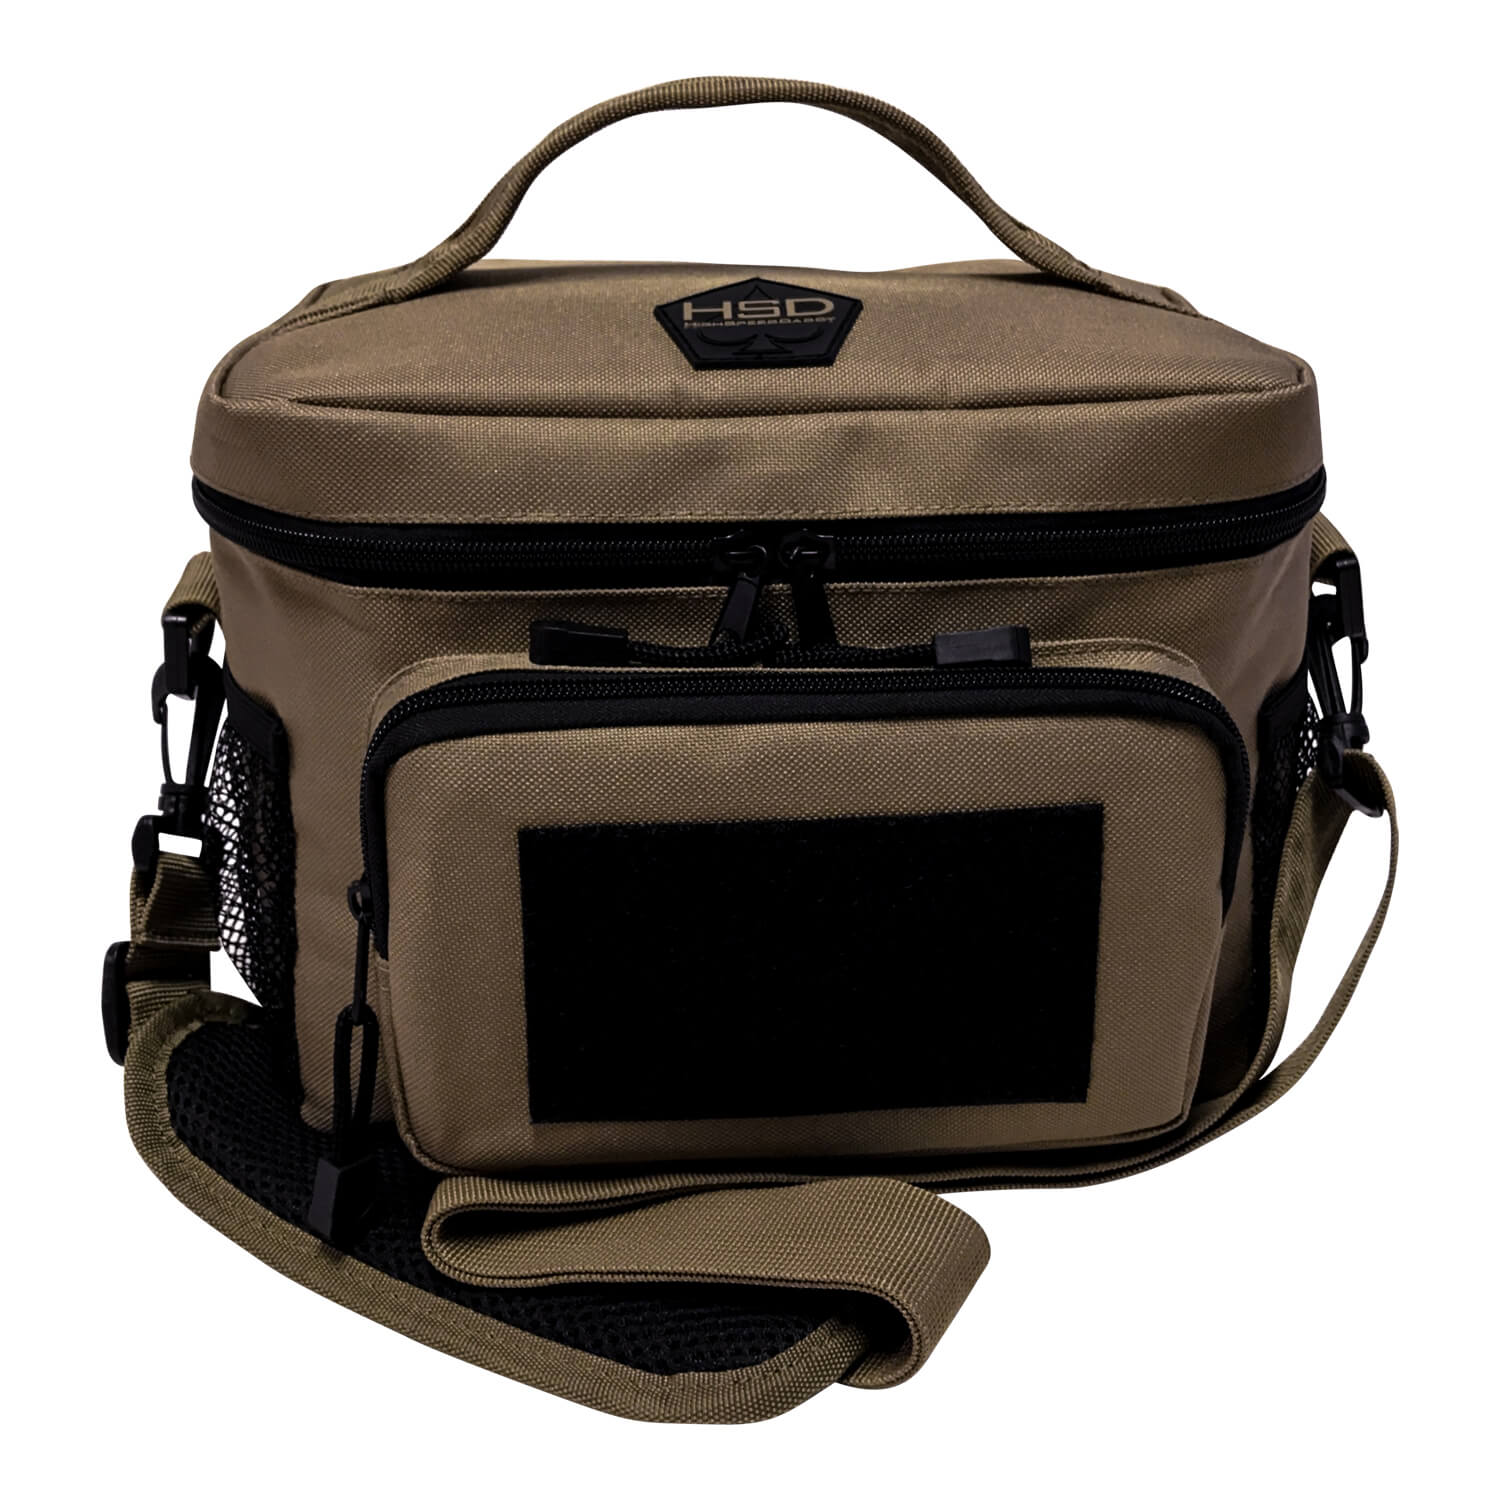 Medium Lunch Bags - Black - Front